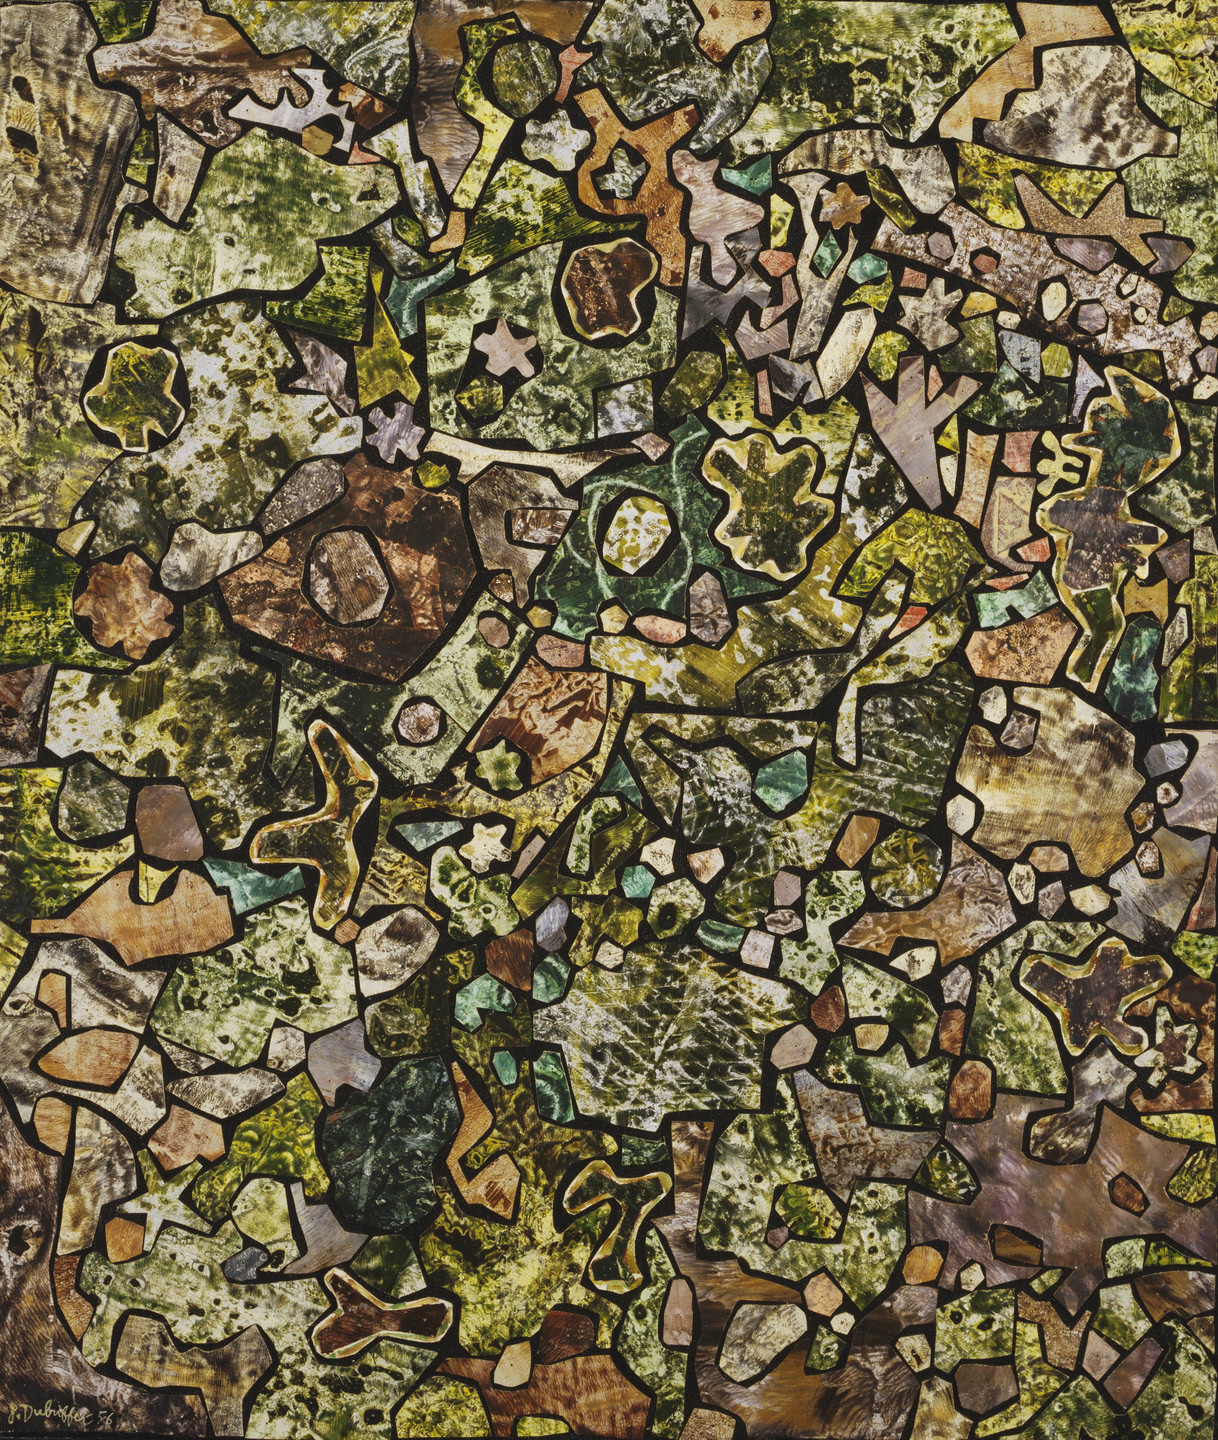 Jean Dubuffet. Soil Ornamented with Vegetation, Dead Leaves, Pebbles, Diverse Debris. June 1956